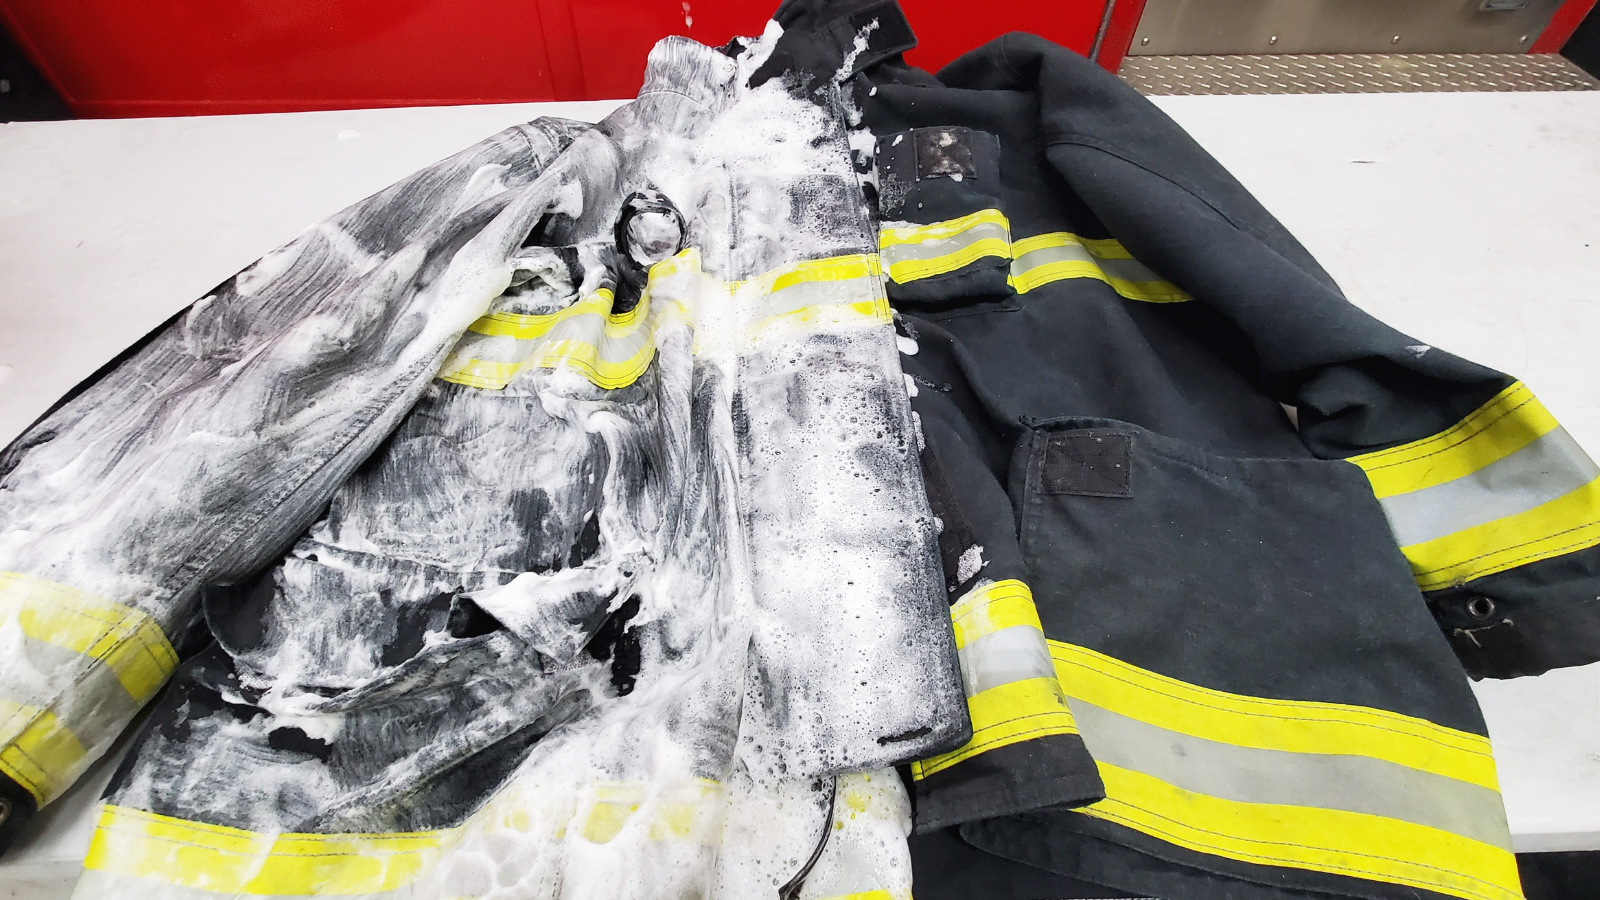 Firefighters jacket being cleaned by Redline Gear Cleaning